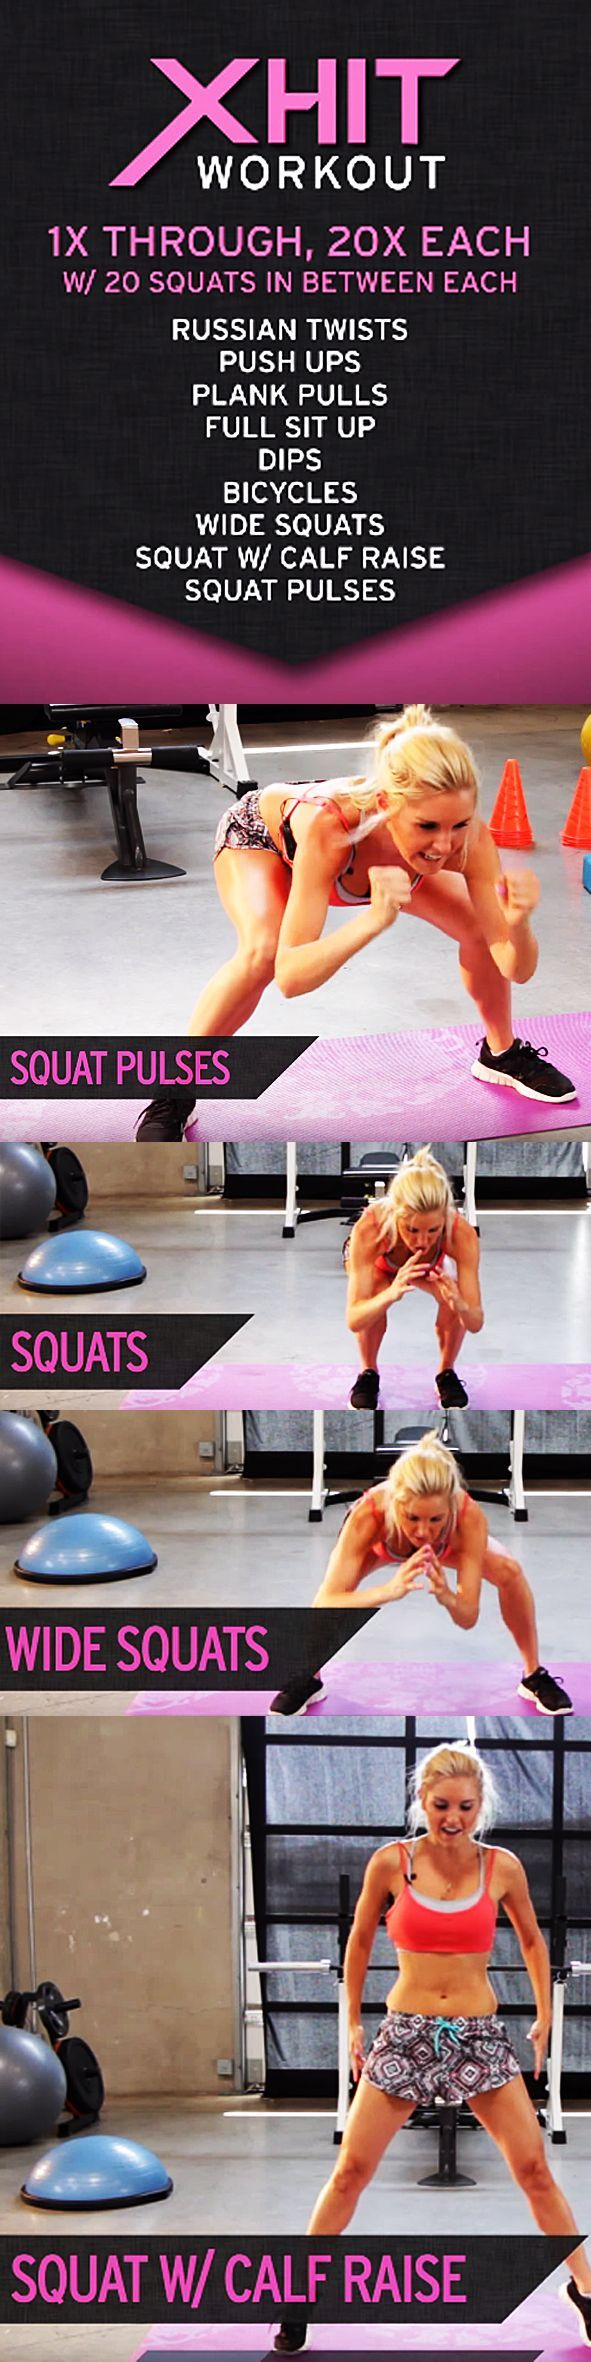 200 BODYWEIGHT SQUAT WORKOUT. This workout will help you burn fat and tone up the whole body, including 200 squats, the main focus will be on your BUM. Watch the video for more instructions … #gluteworkout #buttworkout #squats #buttexercise